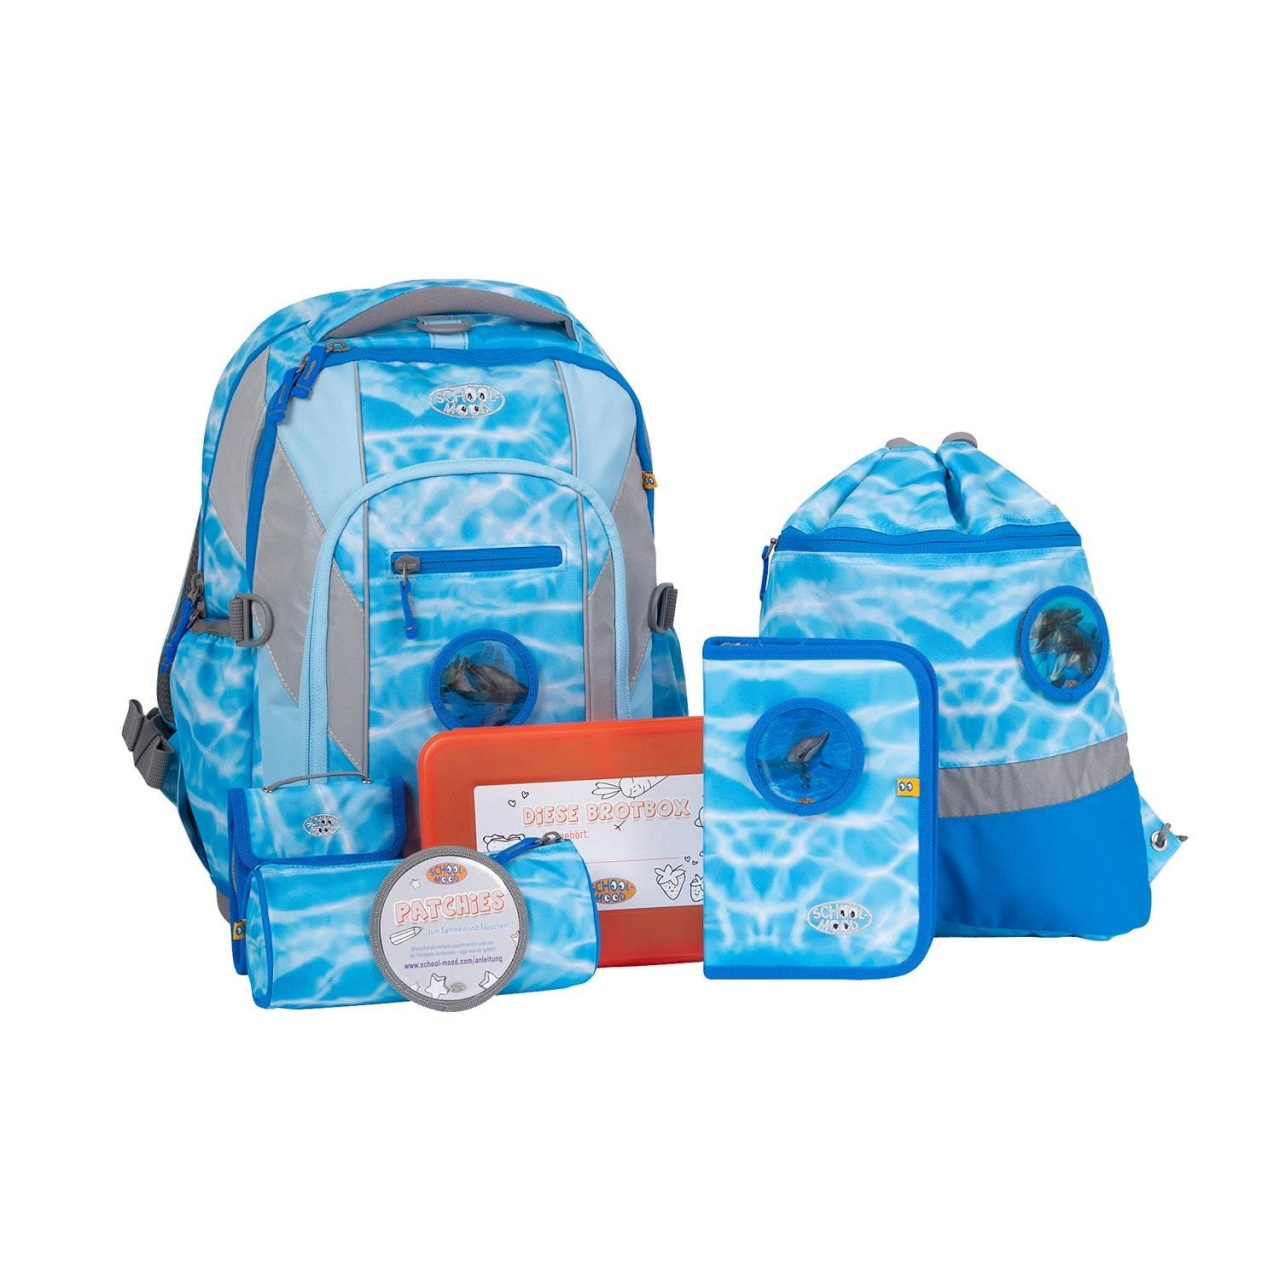 School-Mood Loop Schulranzen-Set eco air Lisa Delphin